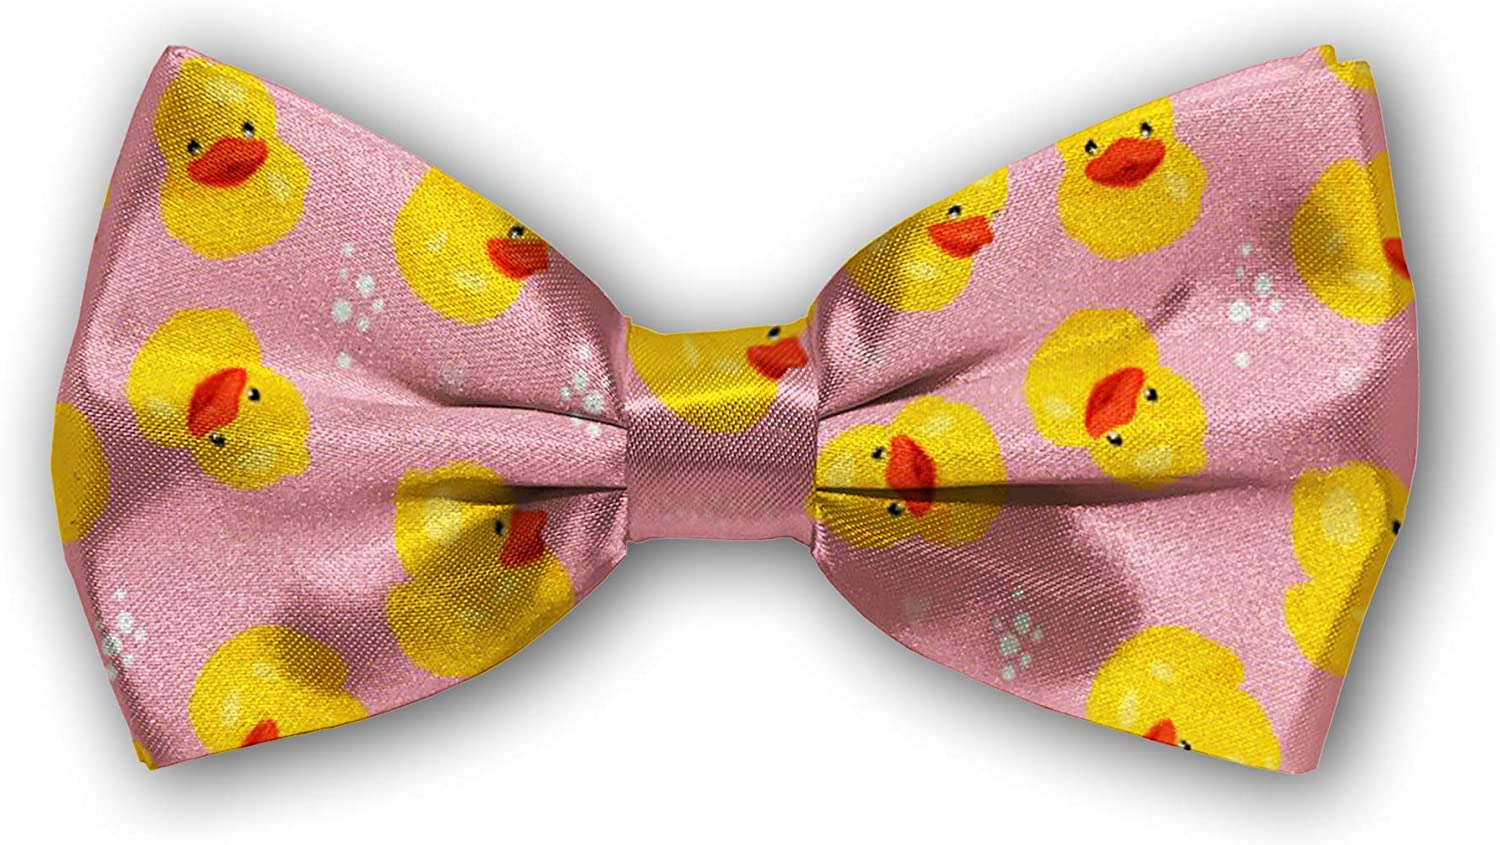 Bow Tie Quantity limited Indefinitely Tuxedo Butterfly Cotton Boys for Adjustable Bowtie Mens